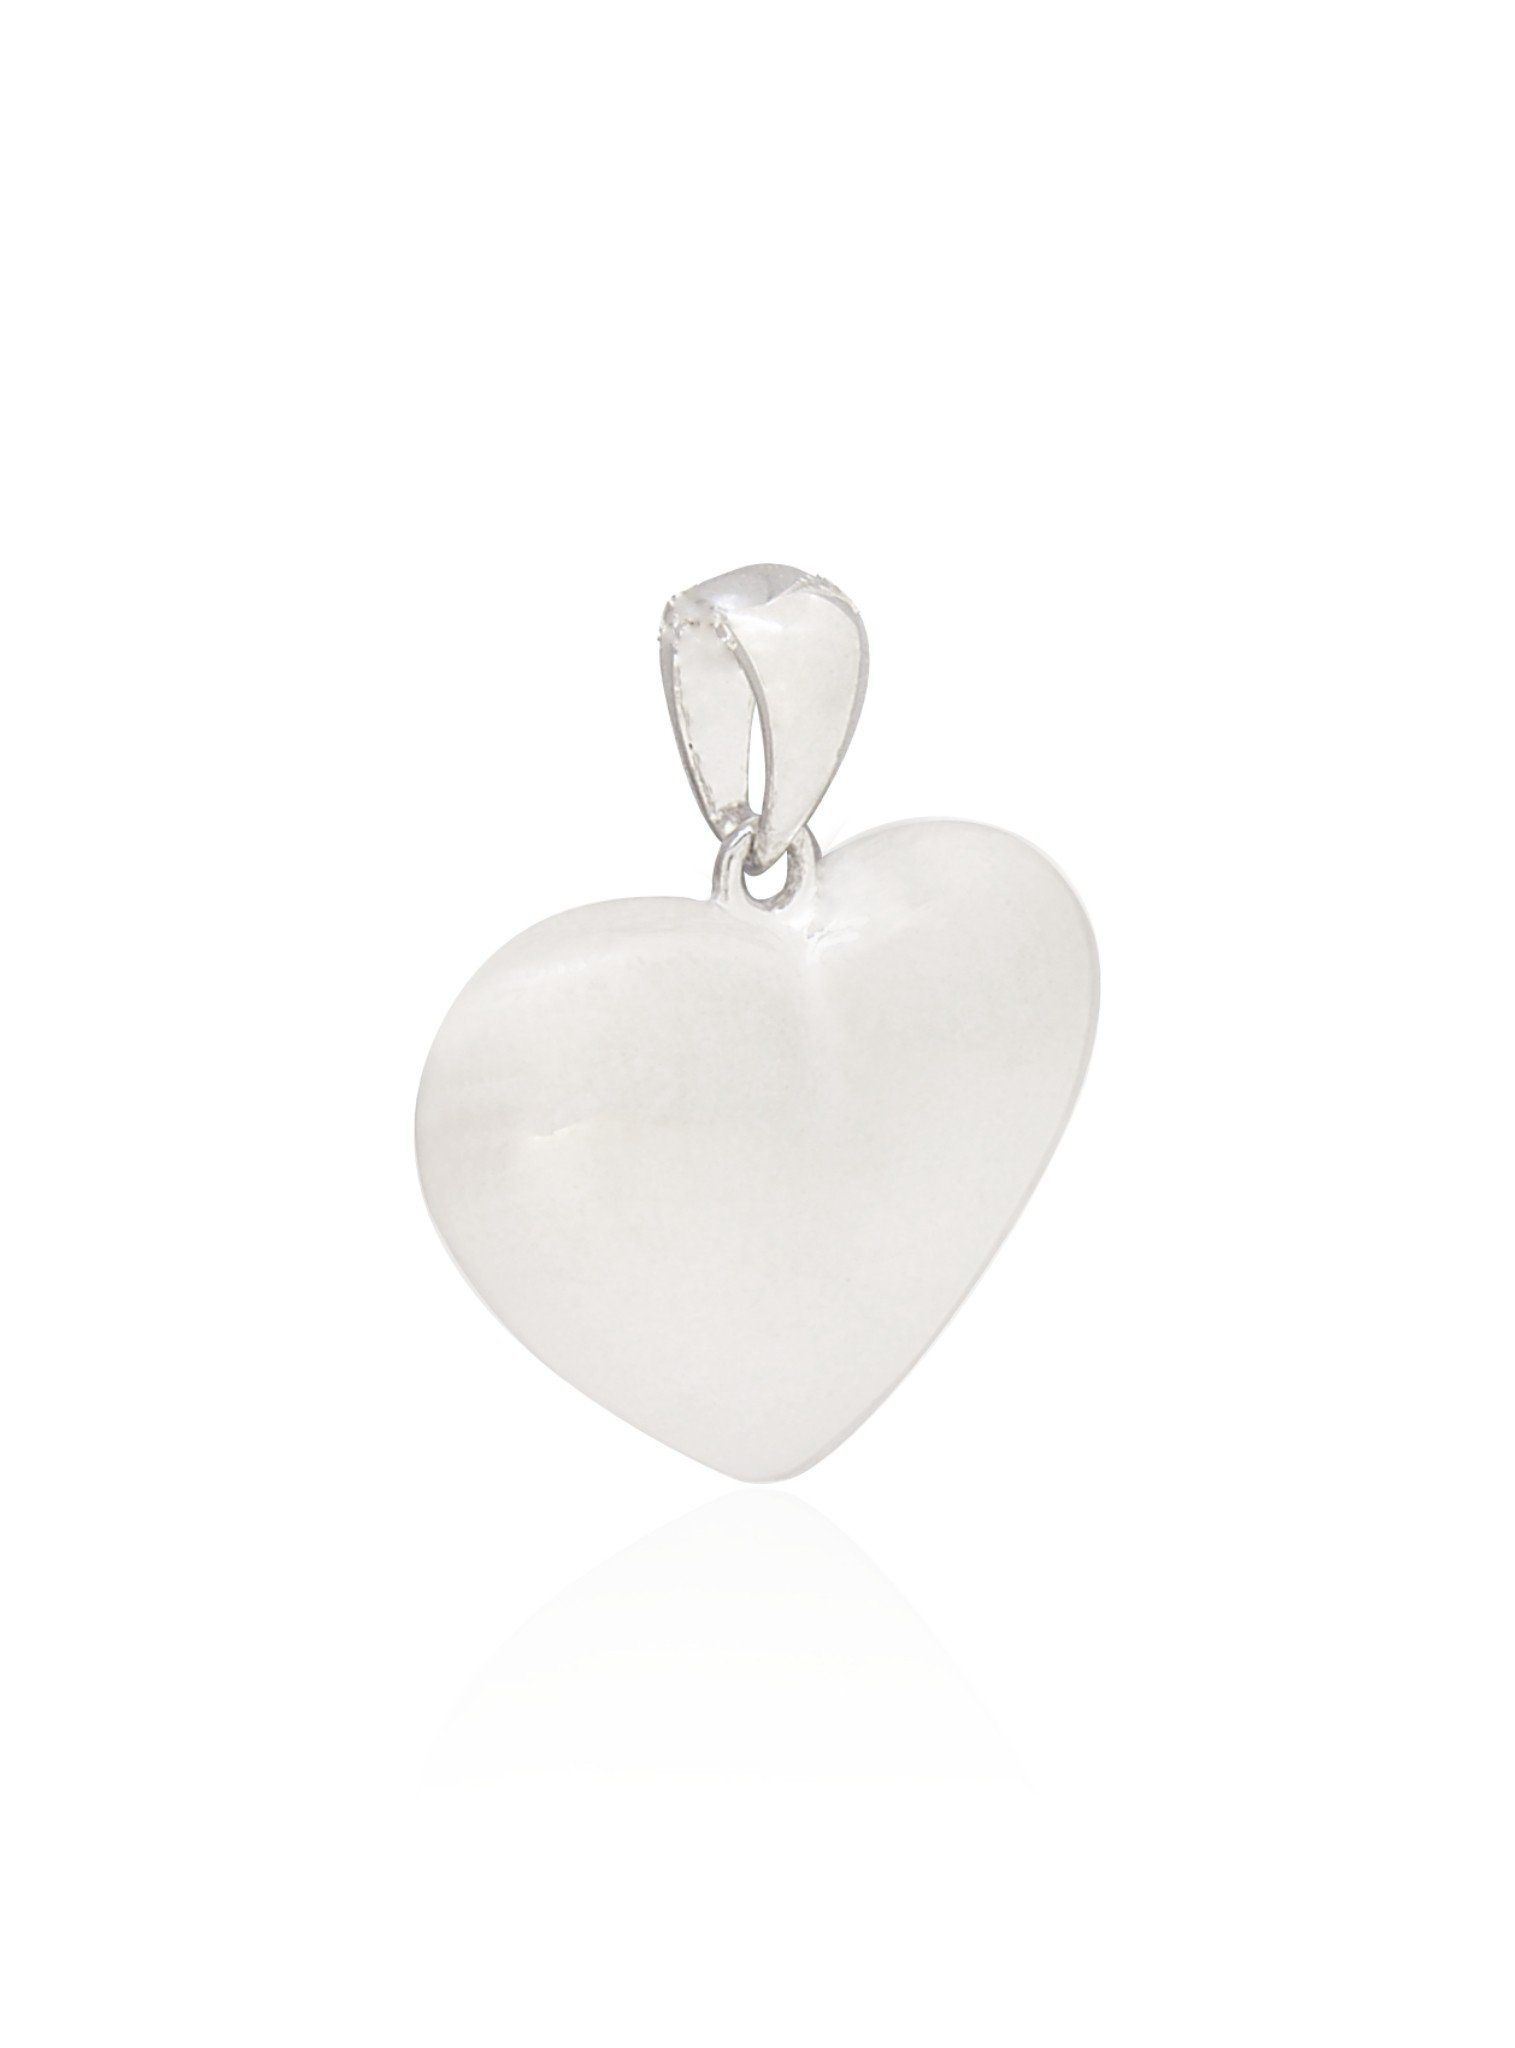 Betty Memorial Puffed Heart Pendant in Sterling Silver